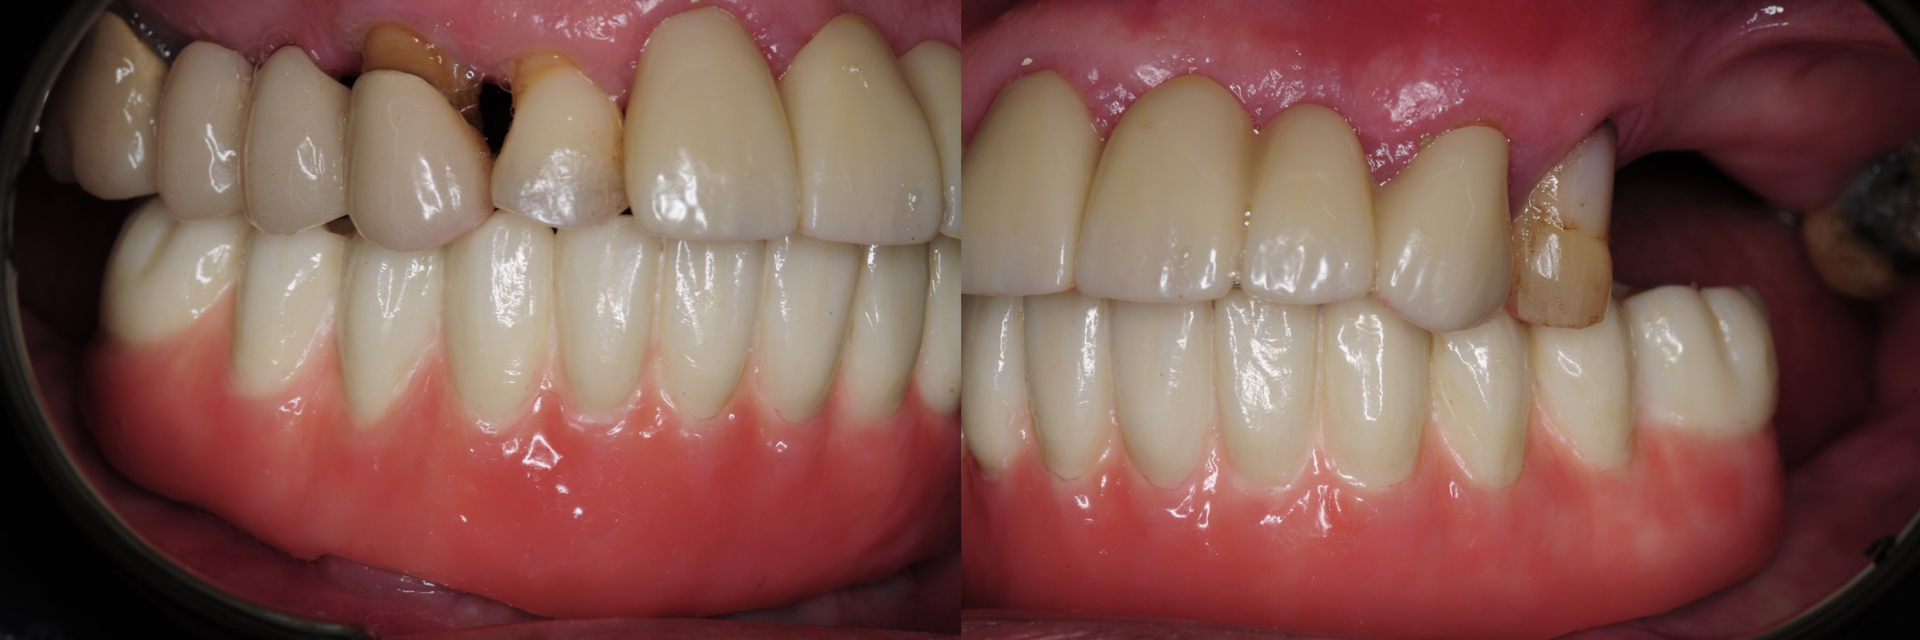 Digital-Workflow-for-Full-Arch-Implant-Supported-Teeth-Chrome-GuidedSmile-Kazemi-Oral-Surgery-Bethesda-Implant-Dentist.017